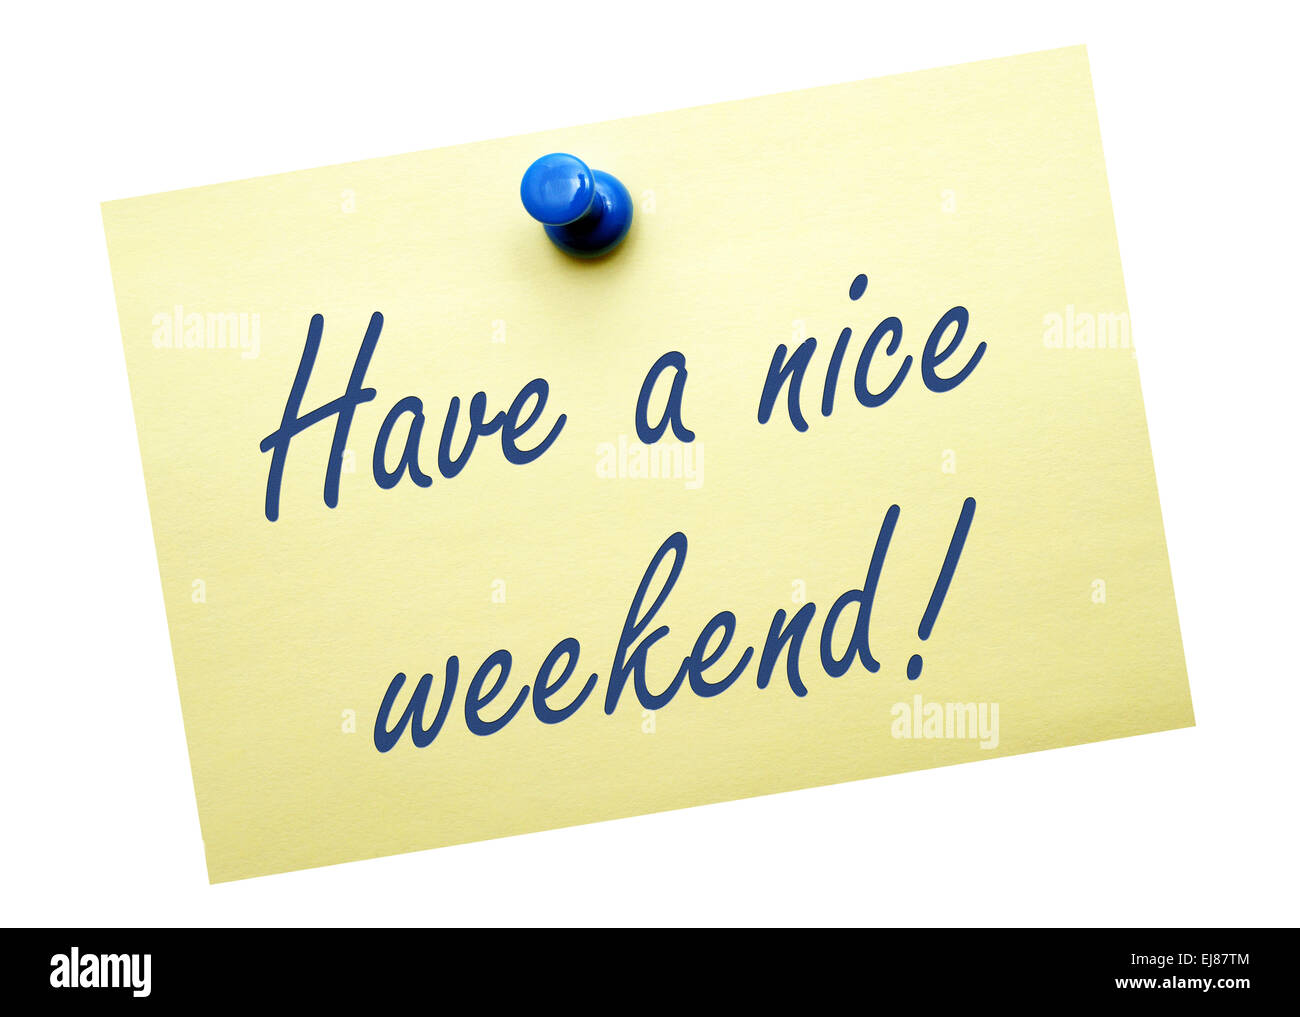 Have a nice weekend ! - Stock Image